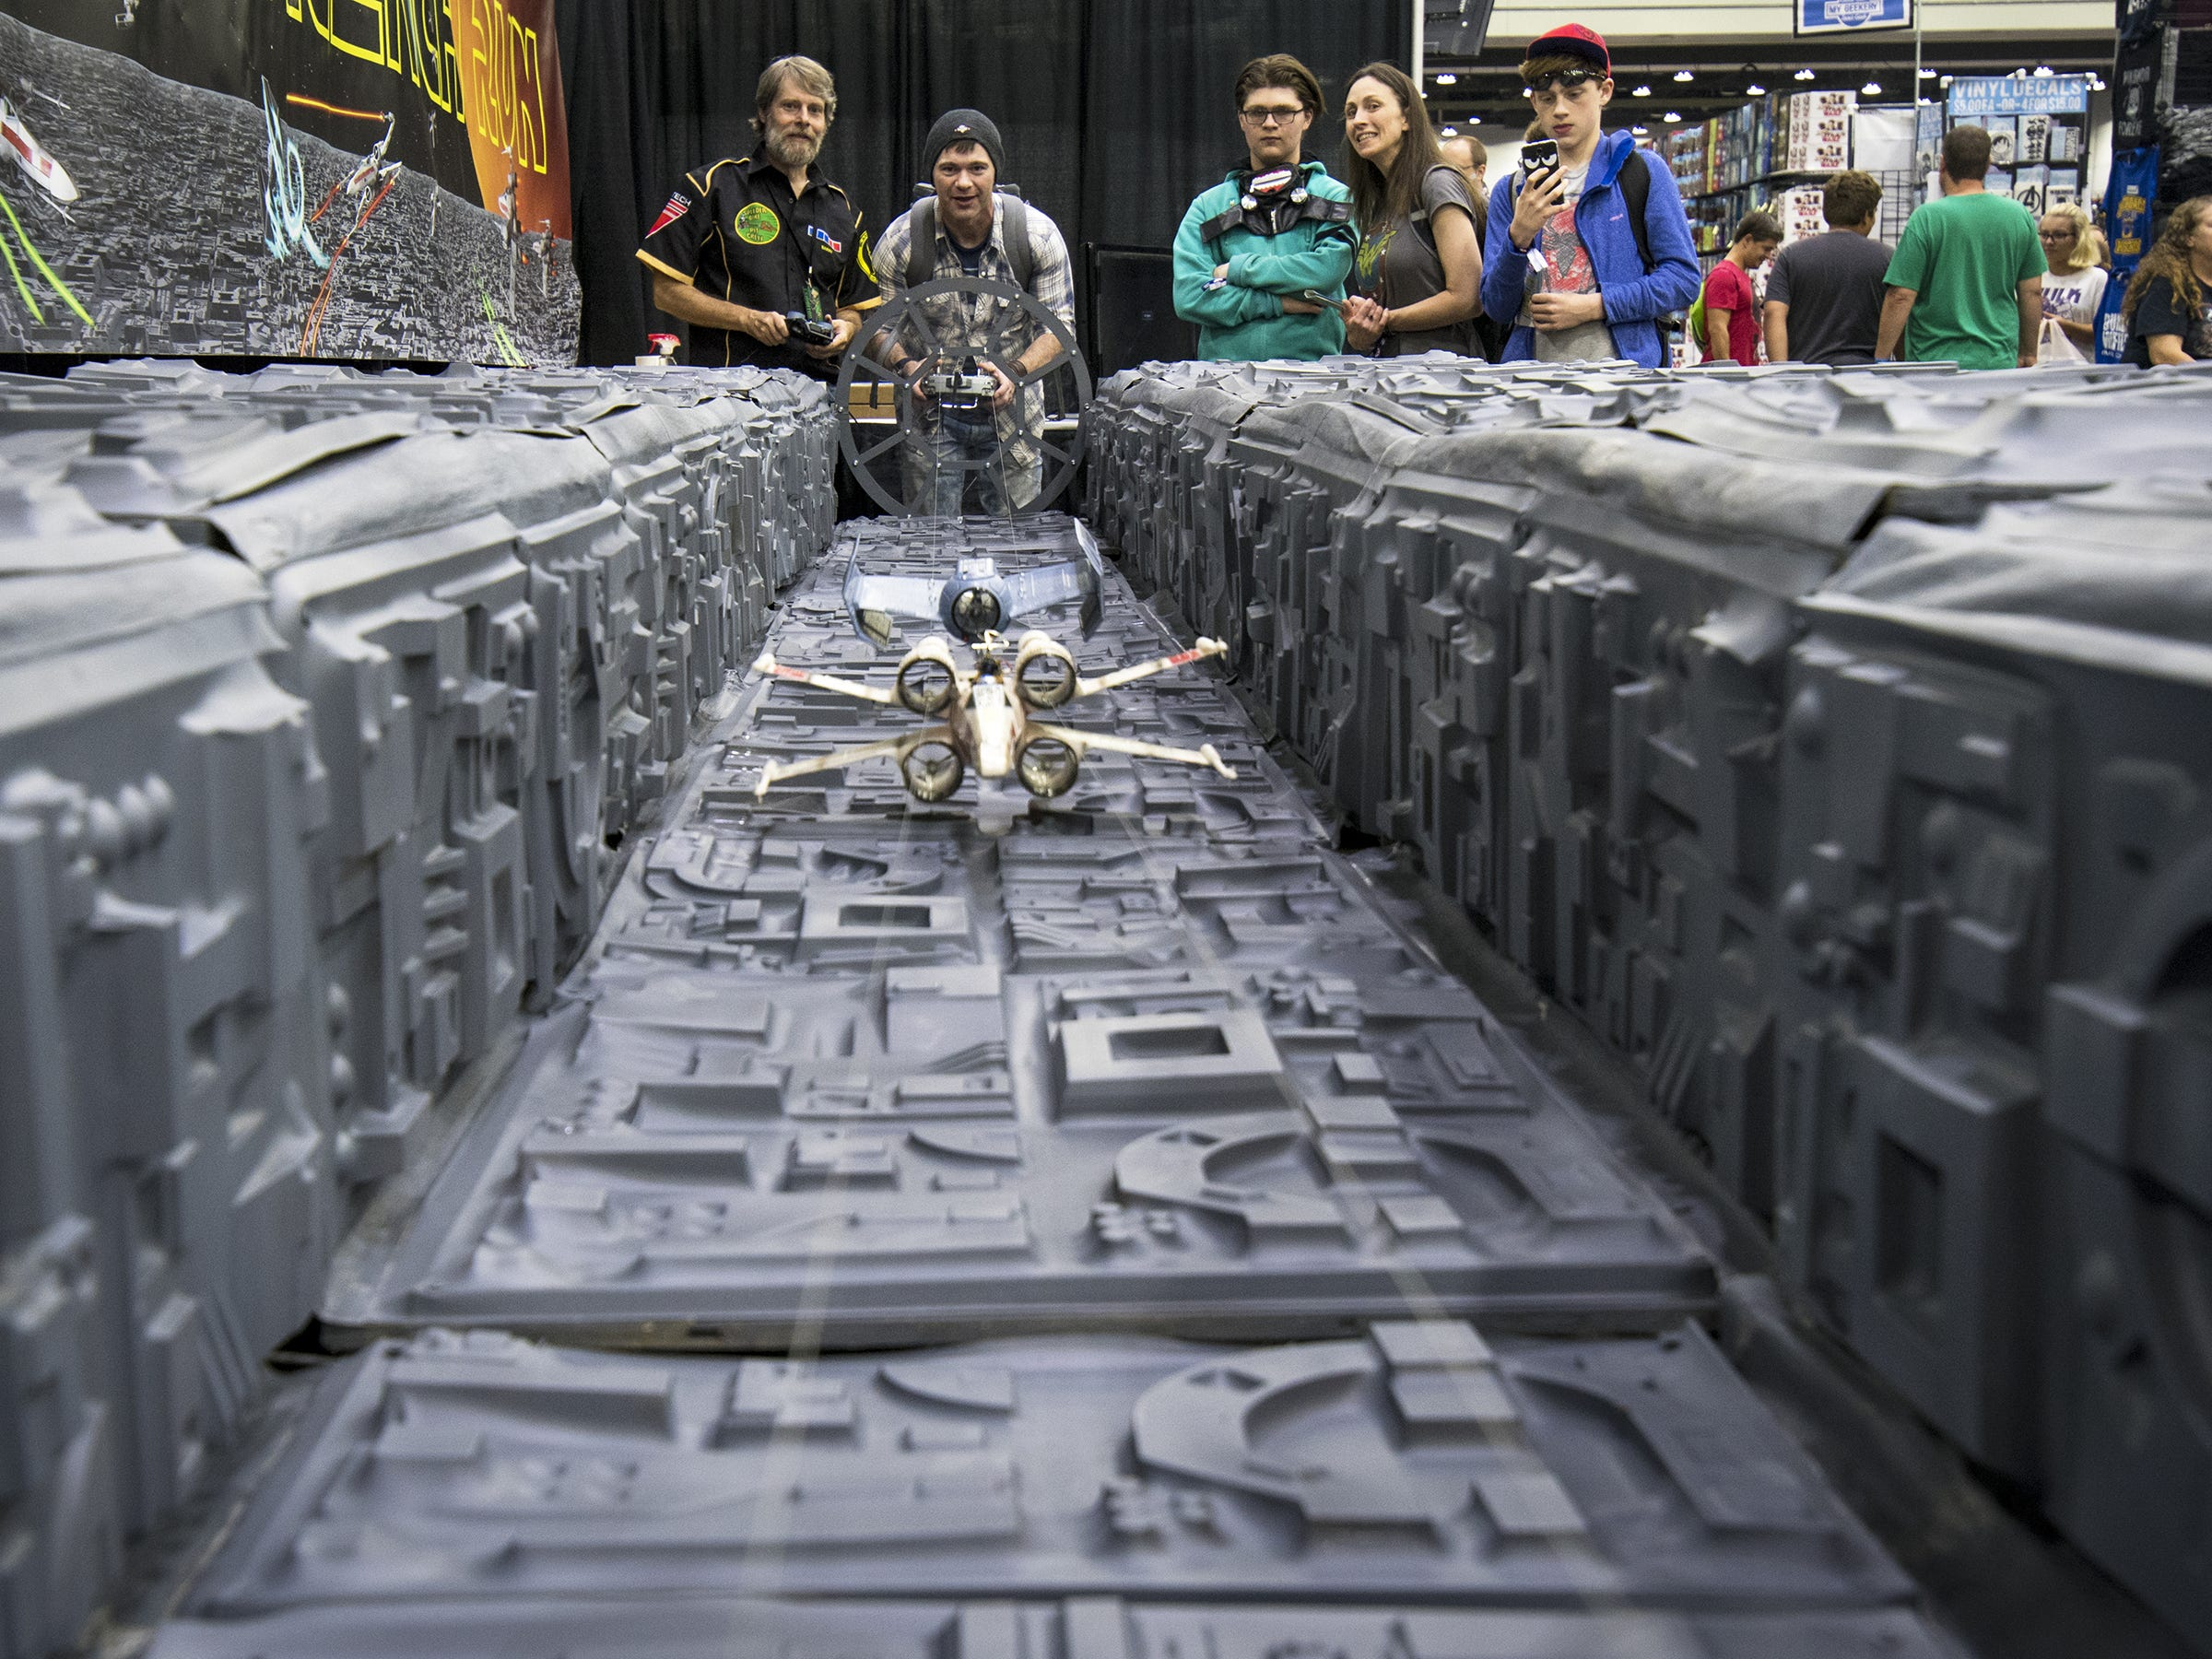 A guest flies an X-Wing model down a trench of the Death Star.